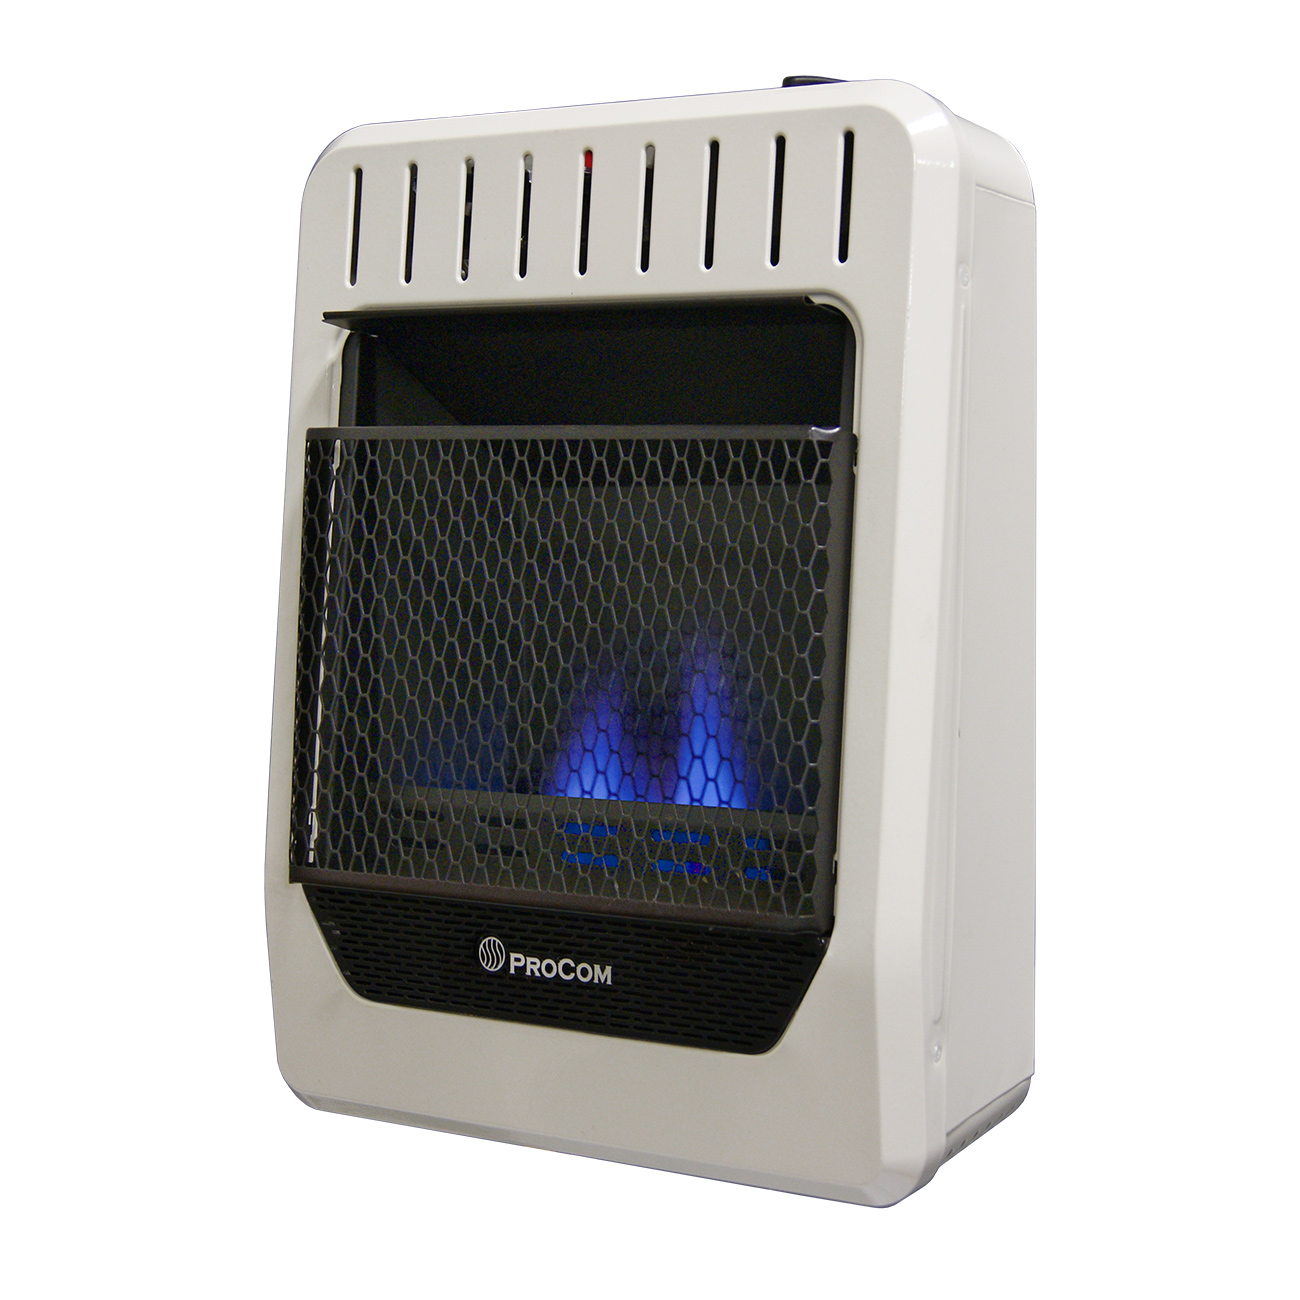 Ventless Propane Gas Blue Flame Wall Heater 10 000 Btu